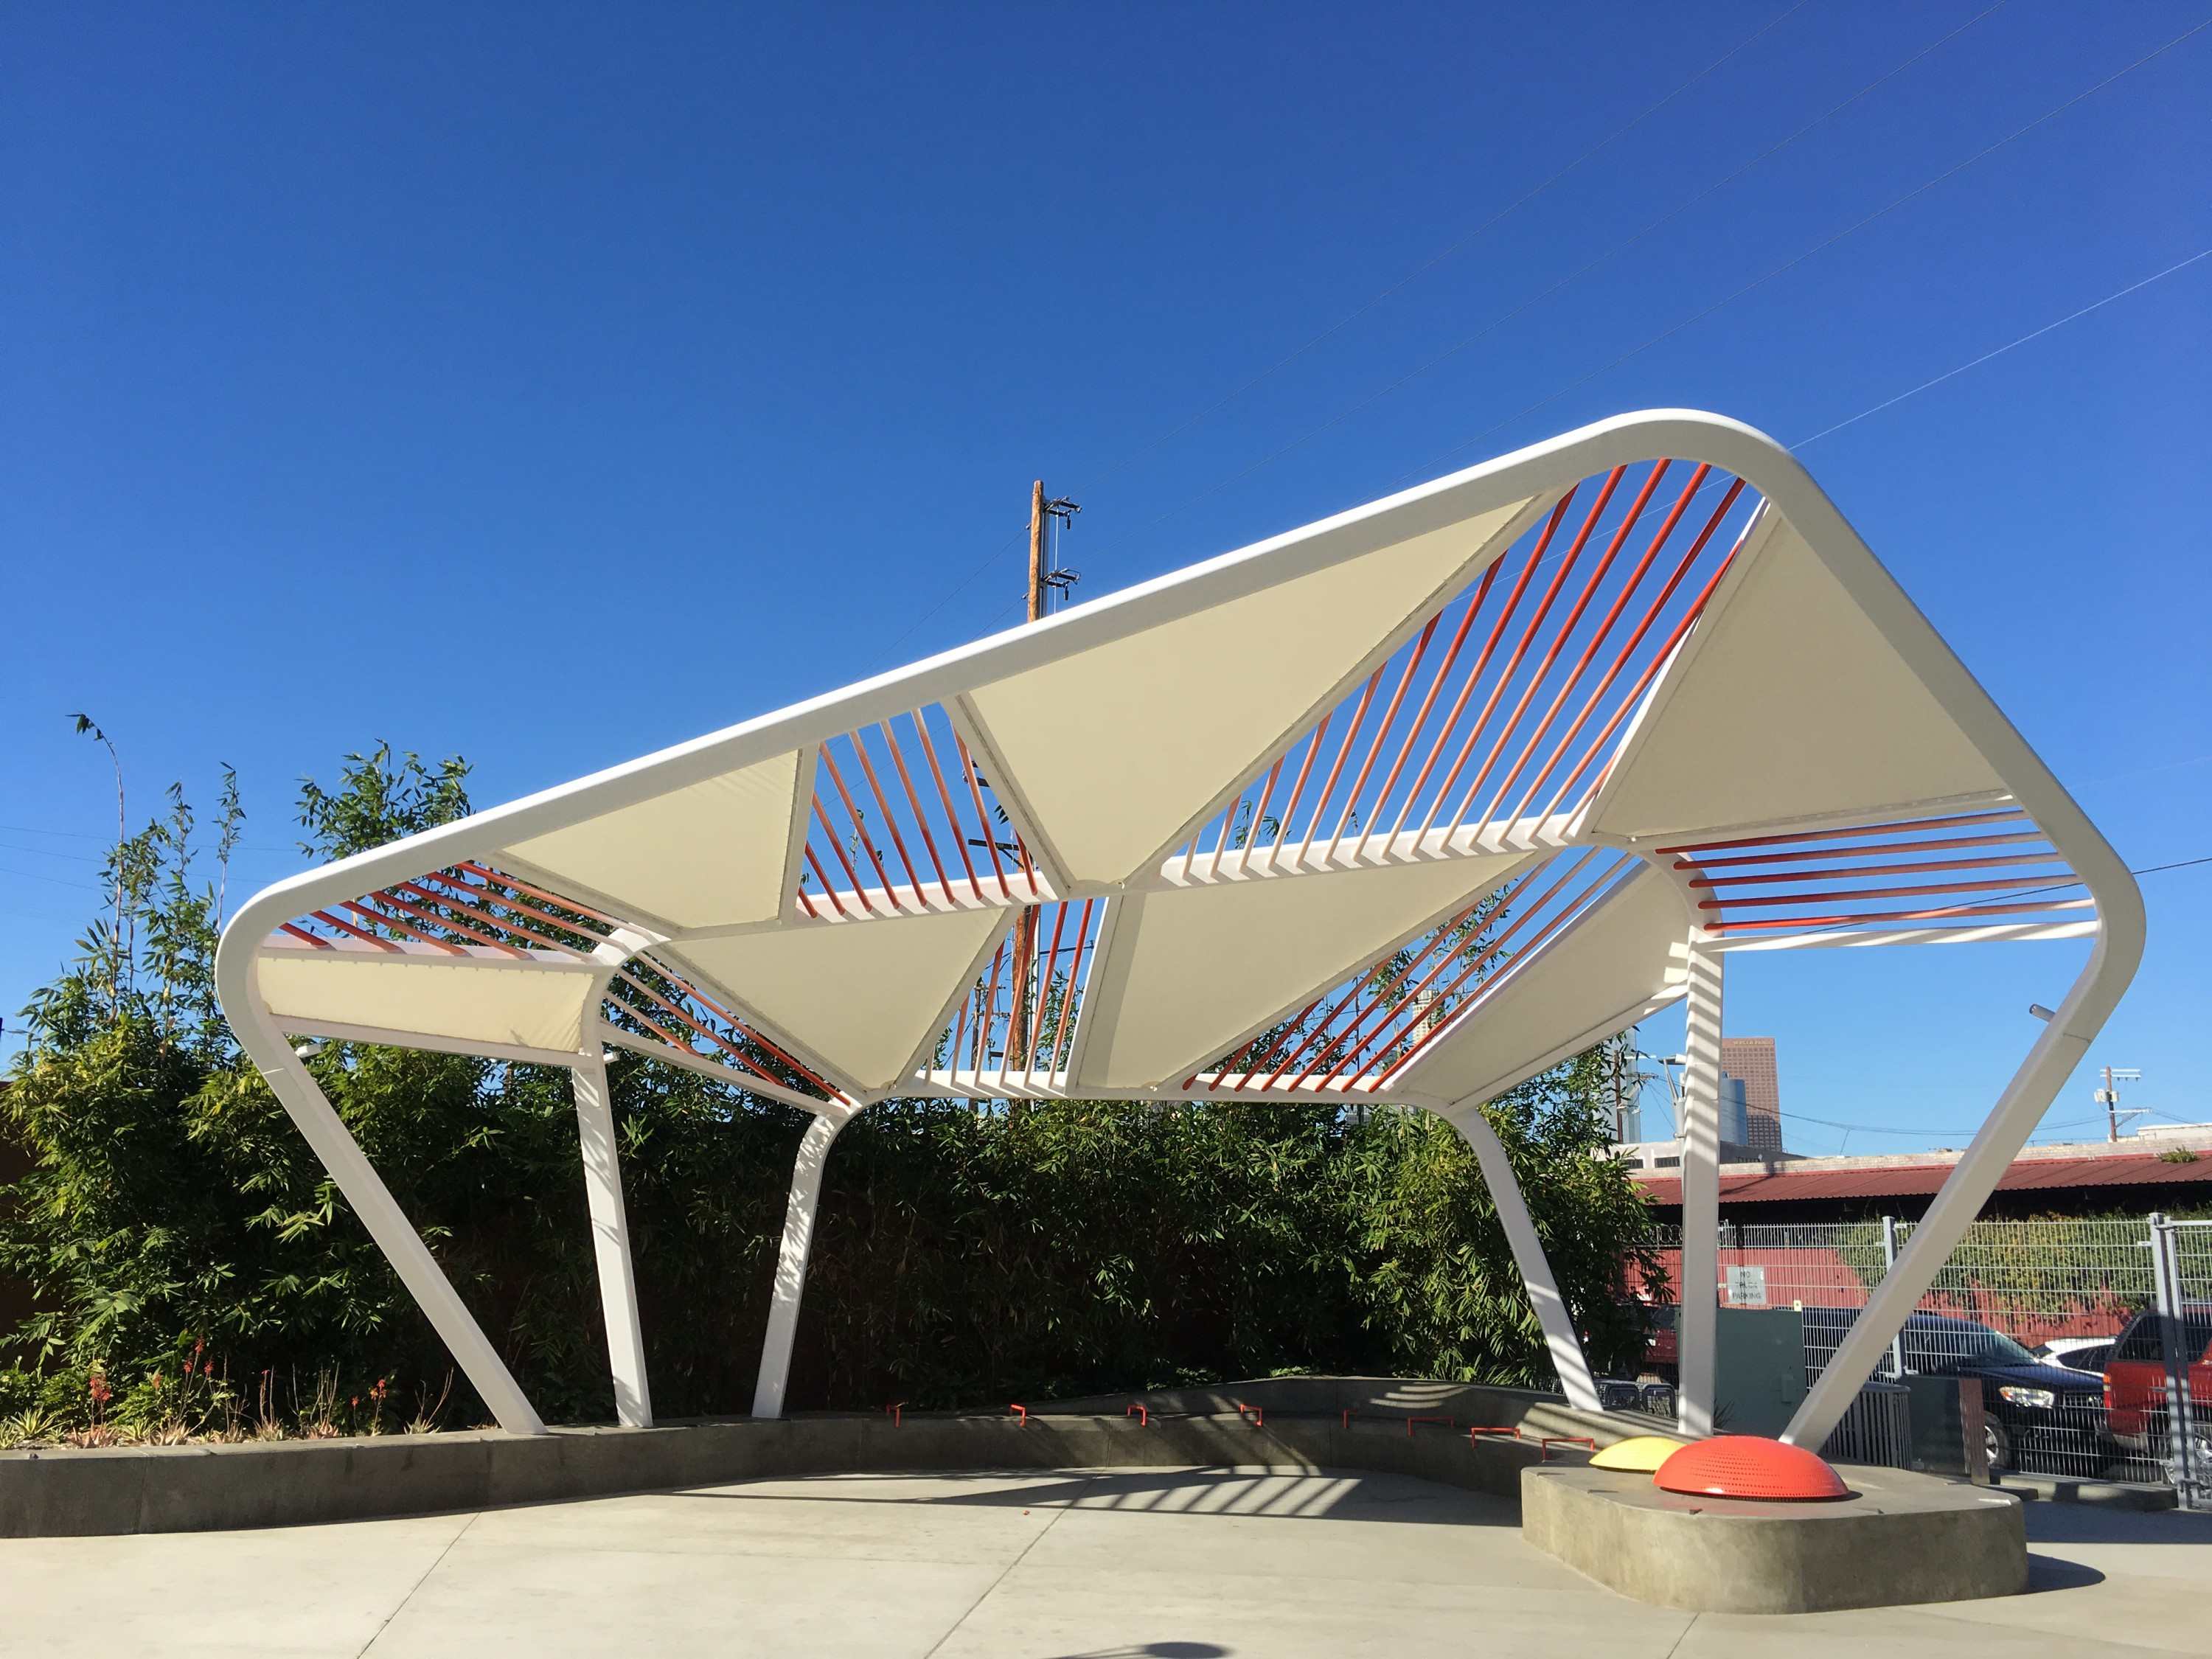 Tension Structures | Arts District Park